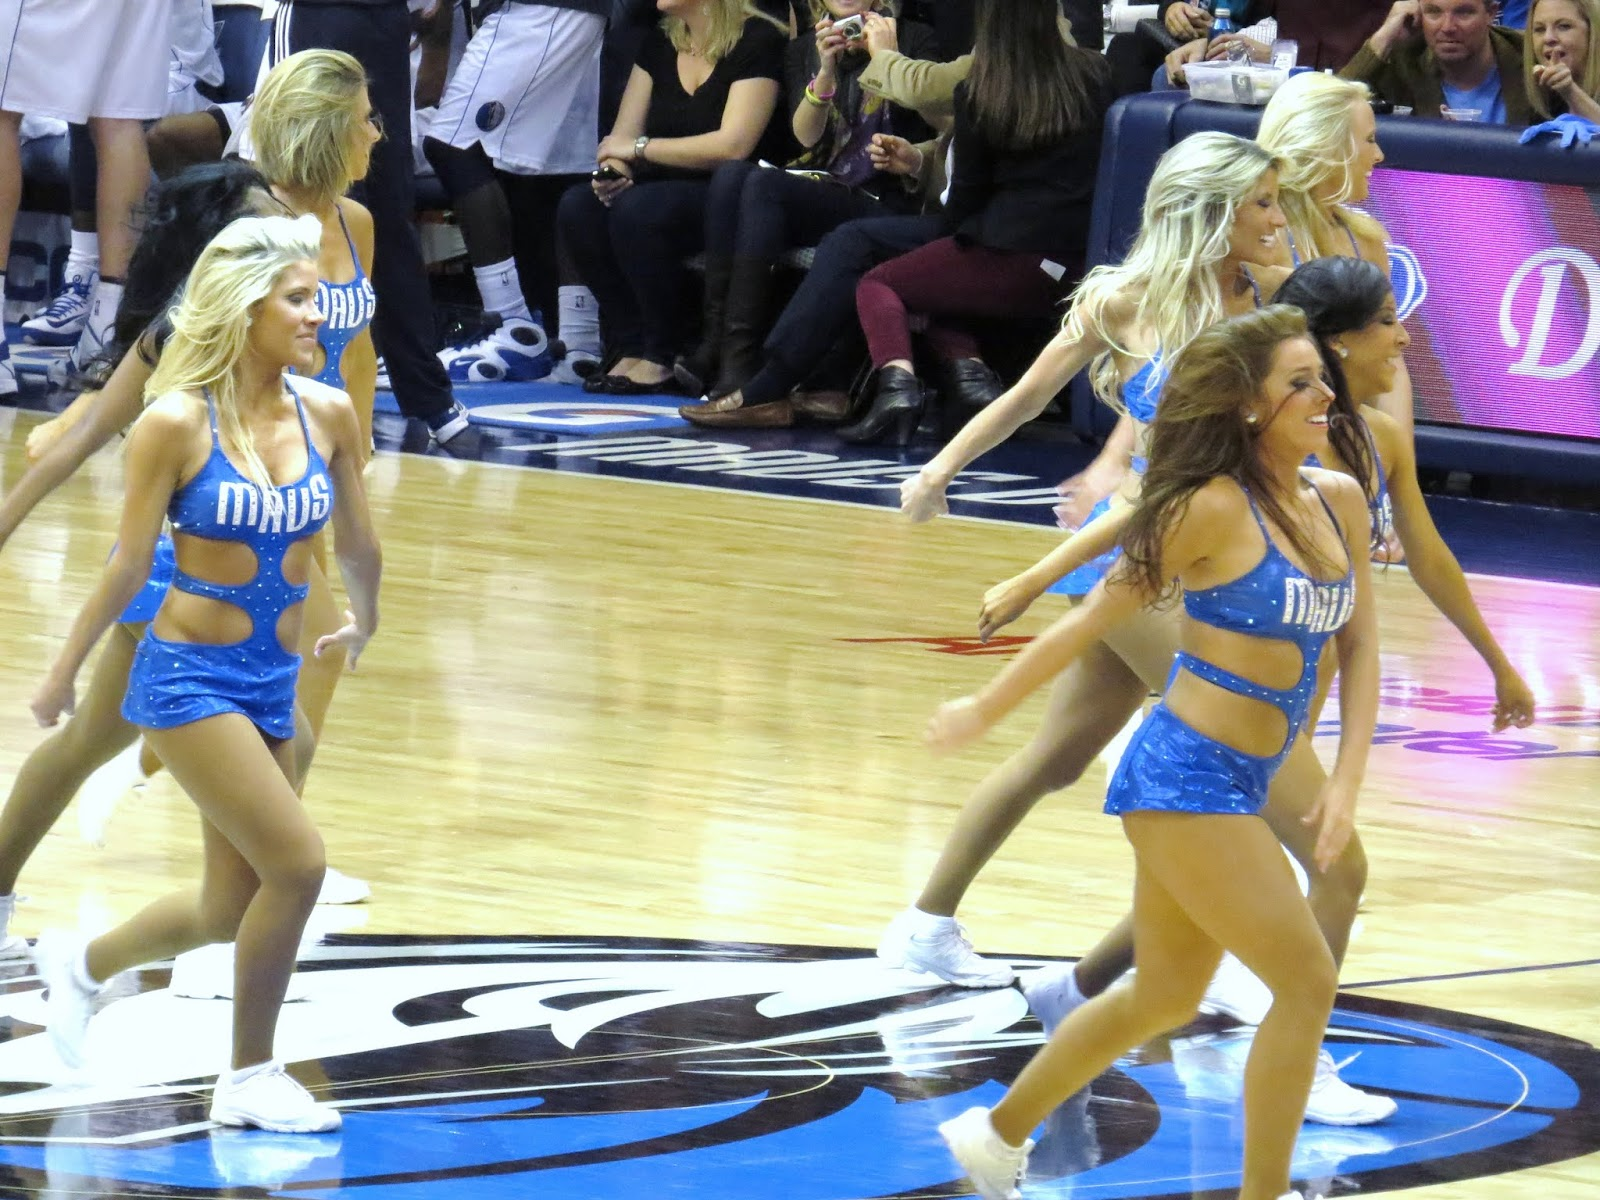 Raptors In Pictures Megi In Texas Dallas Mavericks Vs